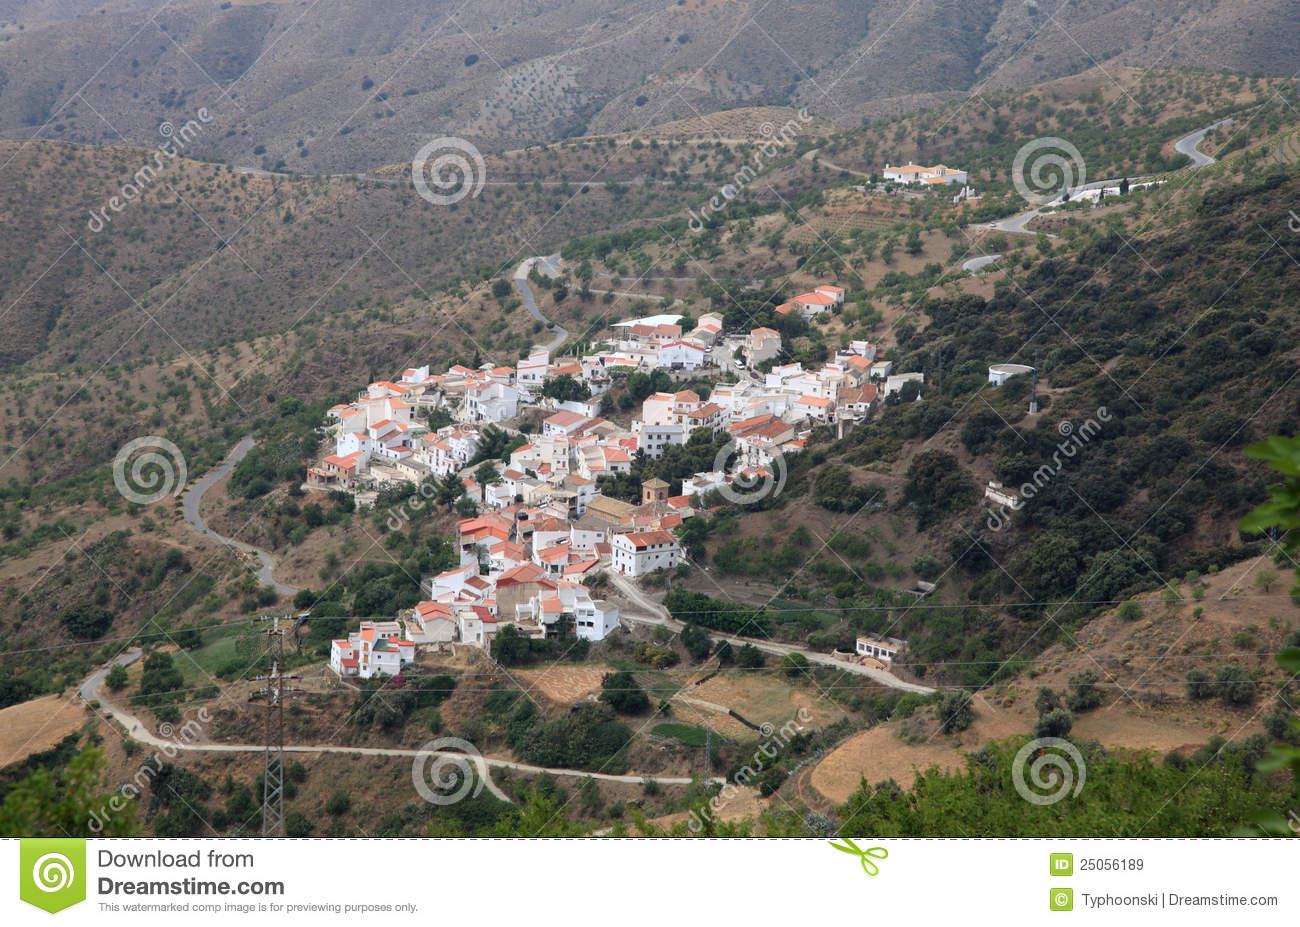 Andalusia (AL) United States  city pictures gallery : Small Village In Andalusia Spain Royalty Free Stock Images Image ...